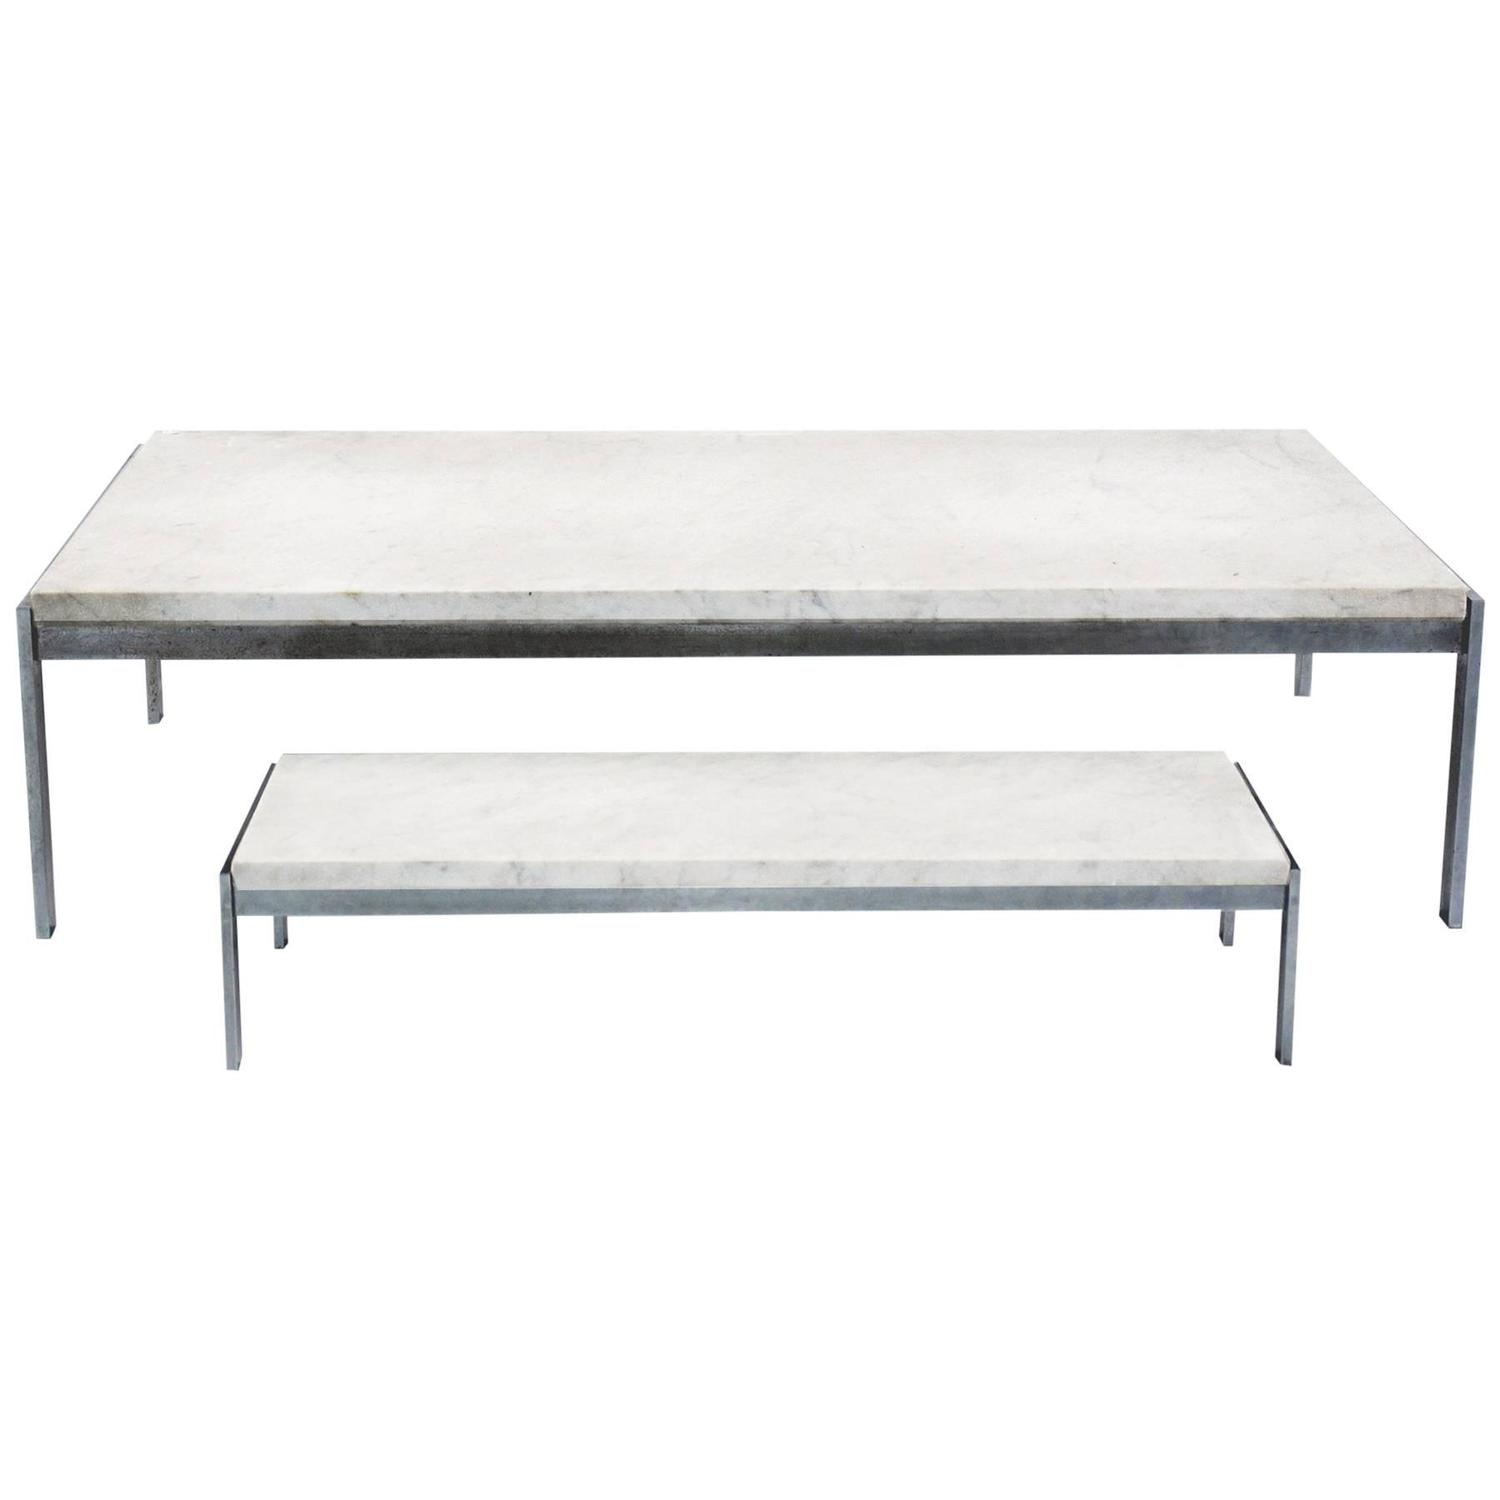 Ryan Marble Stainless Steel Square Coffee Table 60cm: Set Of Two Tables By Poul Kjaerholm, Denmark, 1965 For